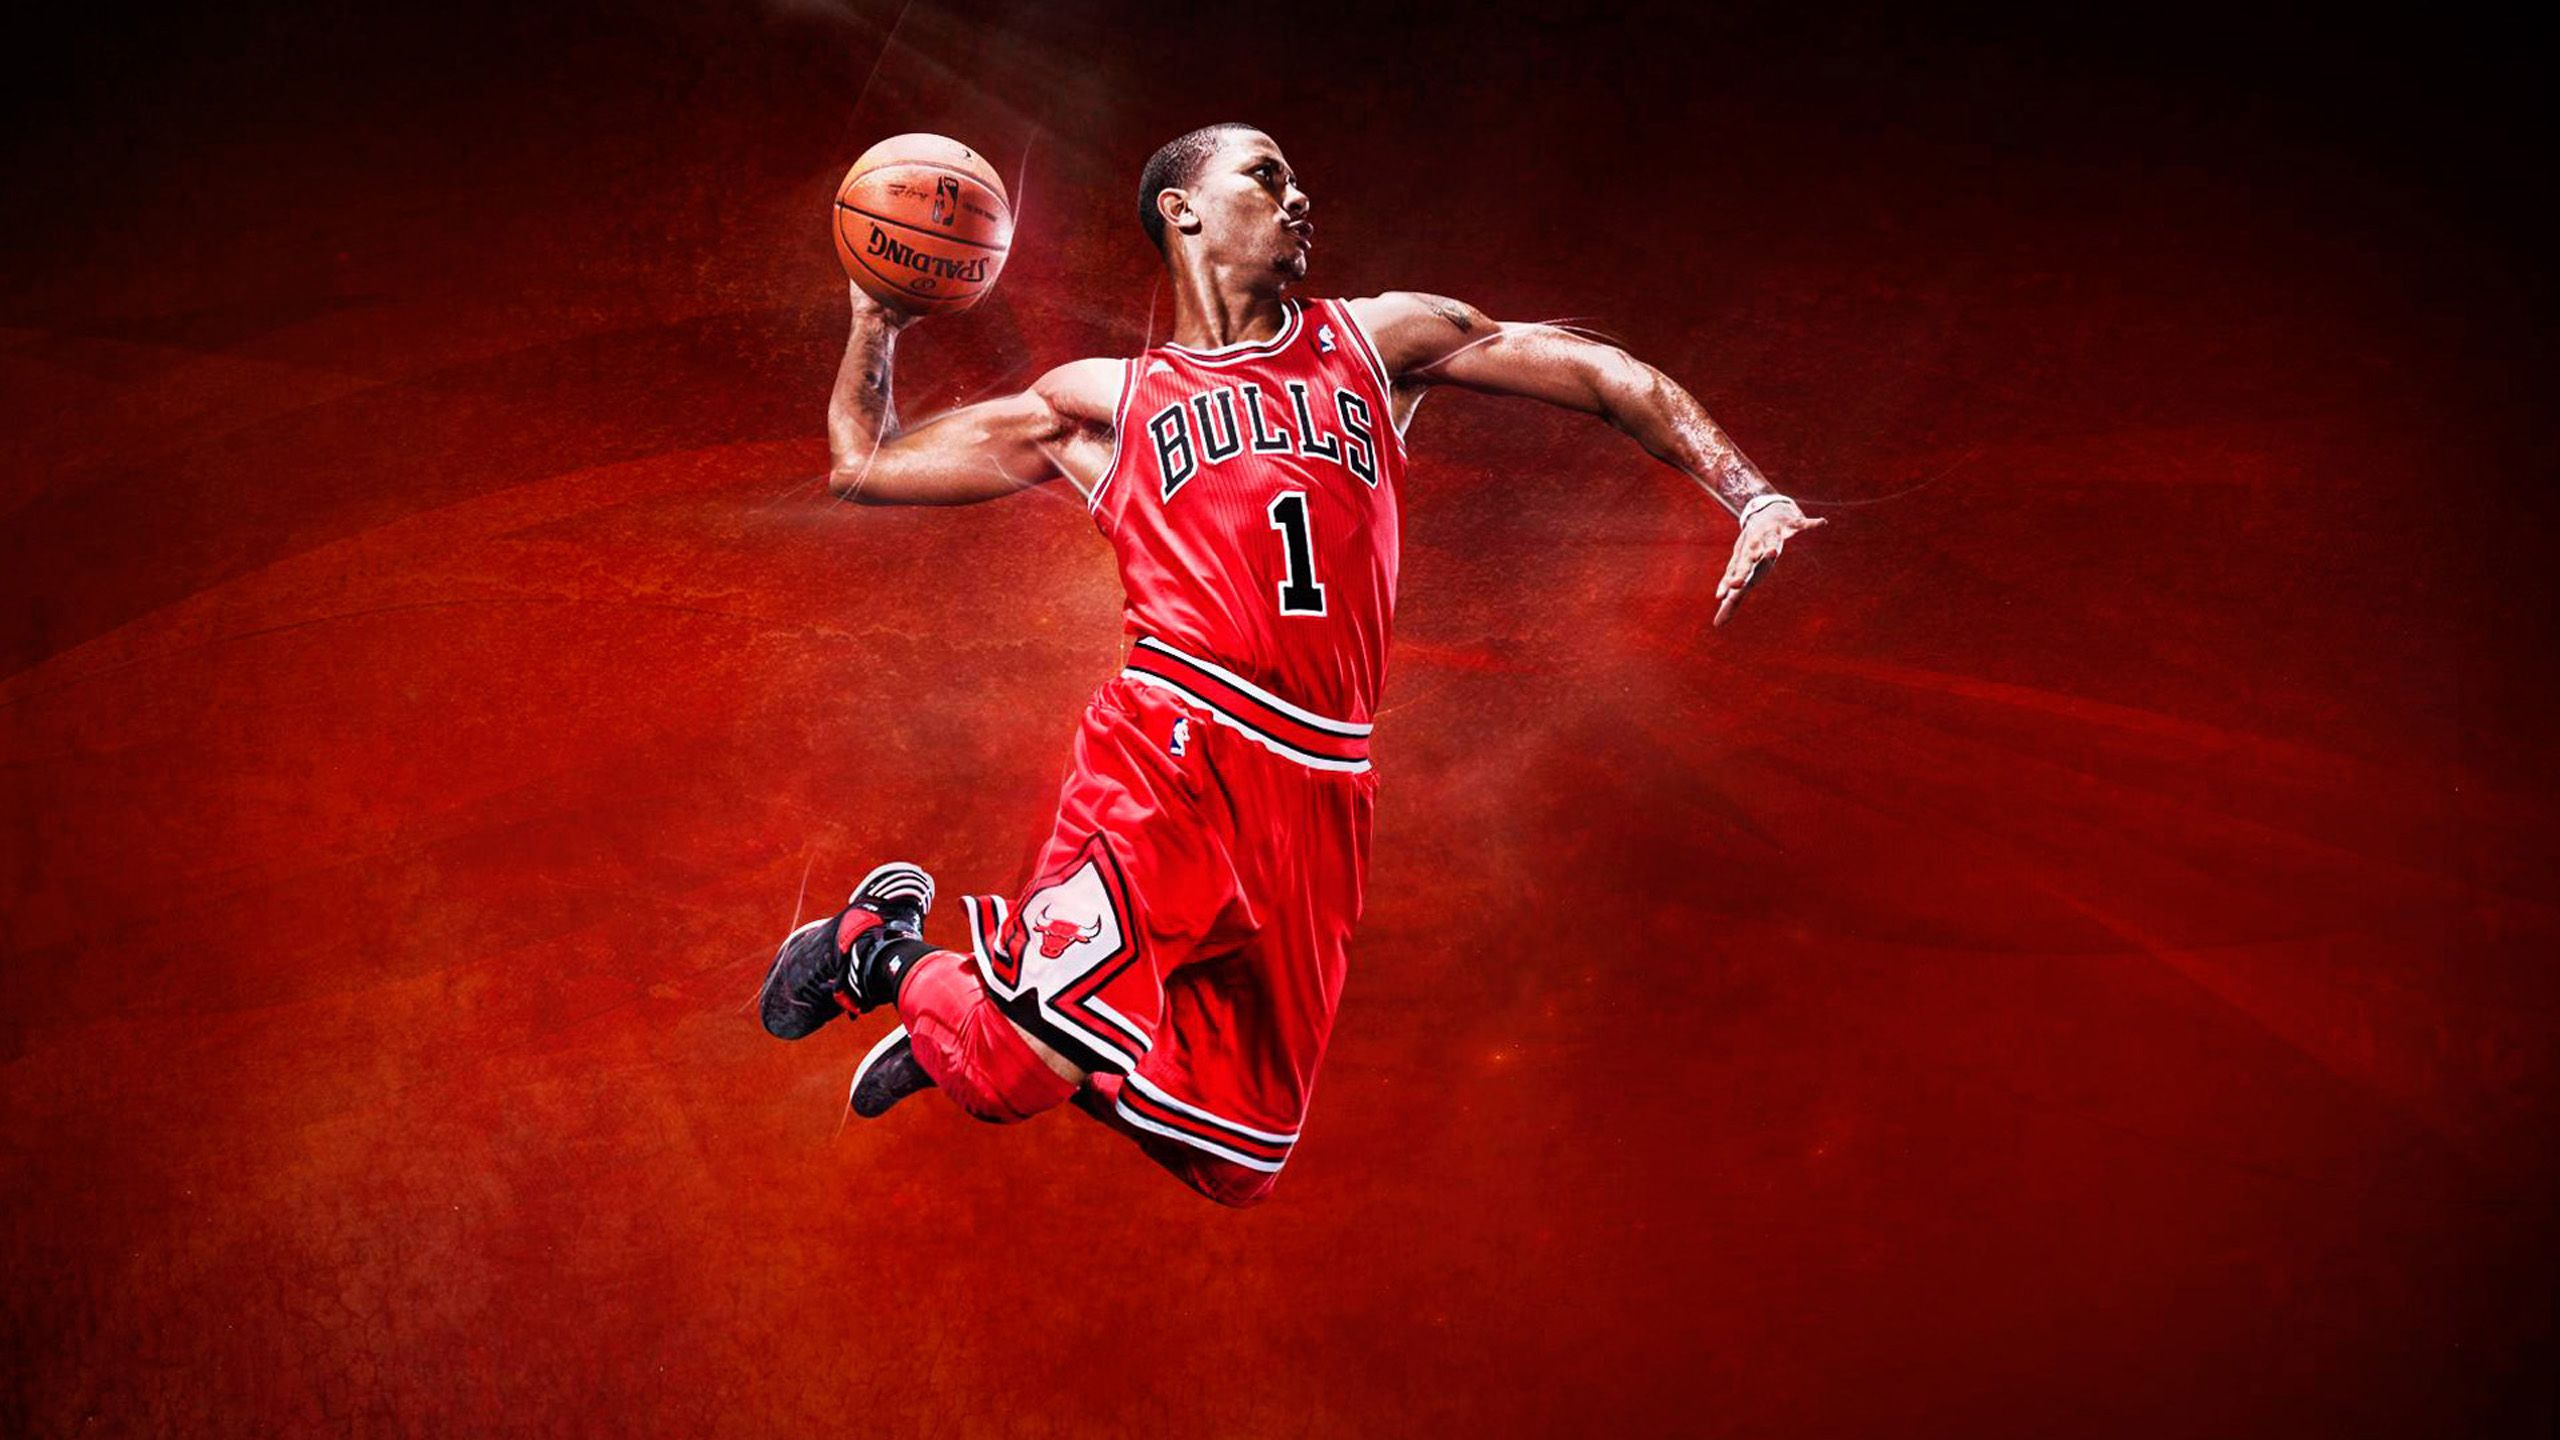 Cool Basketball Wallpapers Google Play의 Android 앱